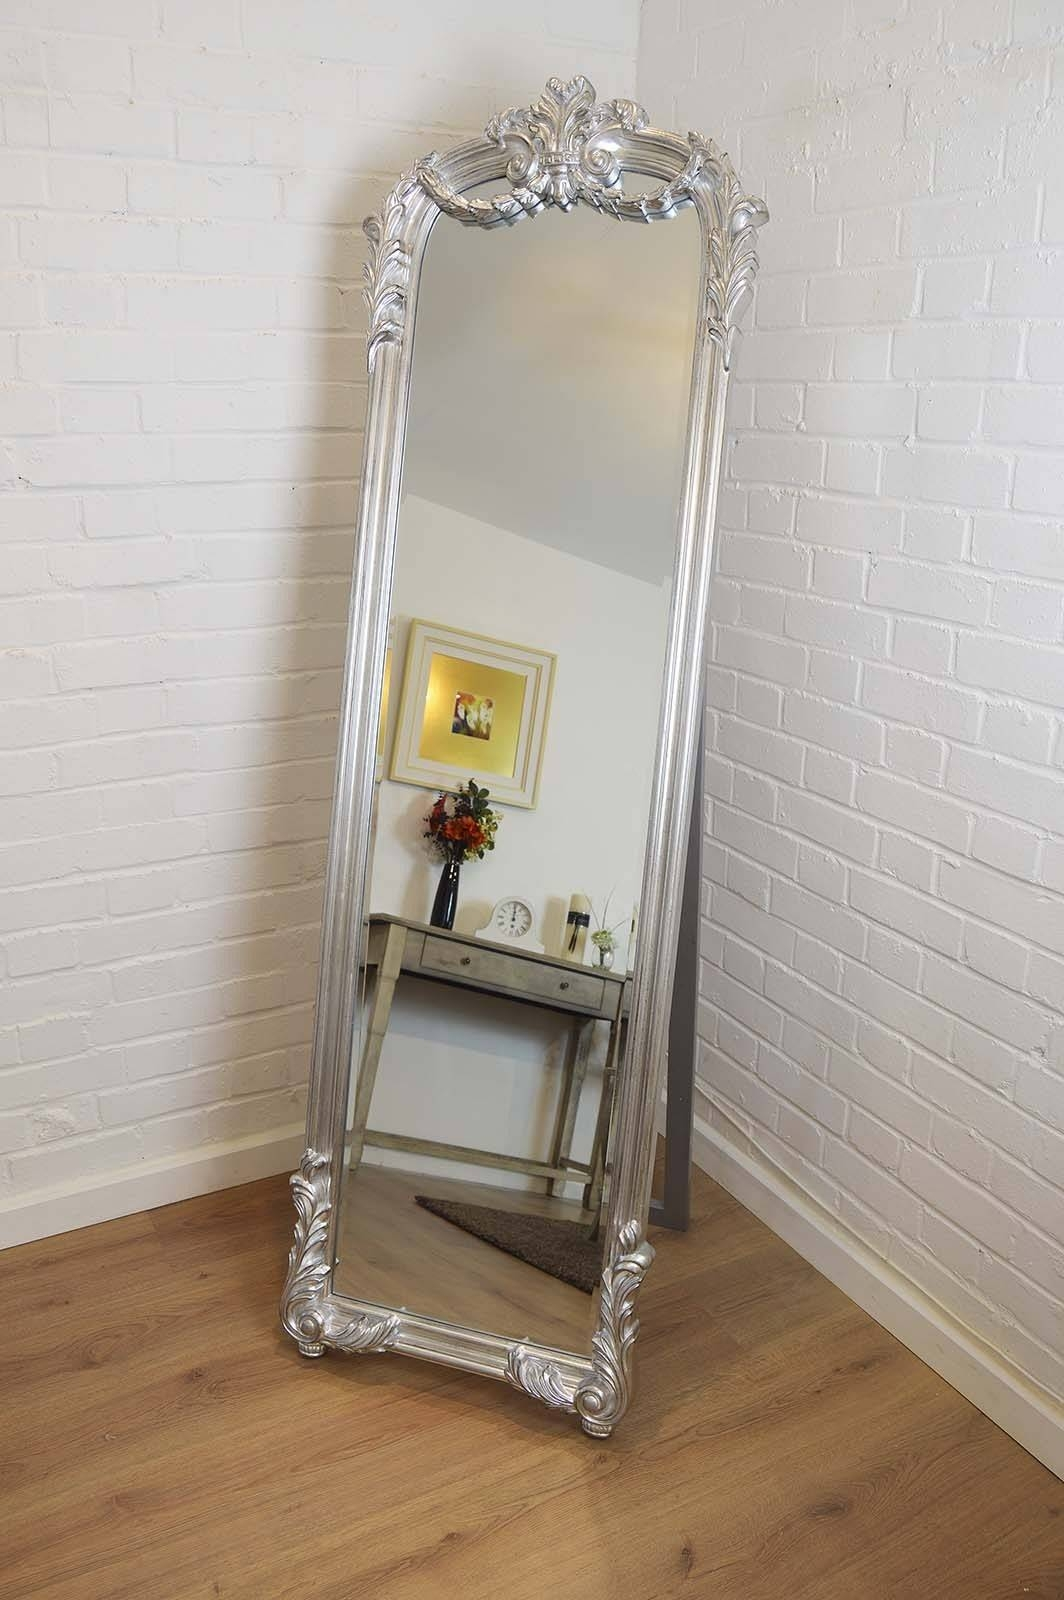 Large Free Standing Mirror 22 Awesome Exterior With Leaning Floor Pertaining To Long Free Standing Mirrors (View 18 of 25)